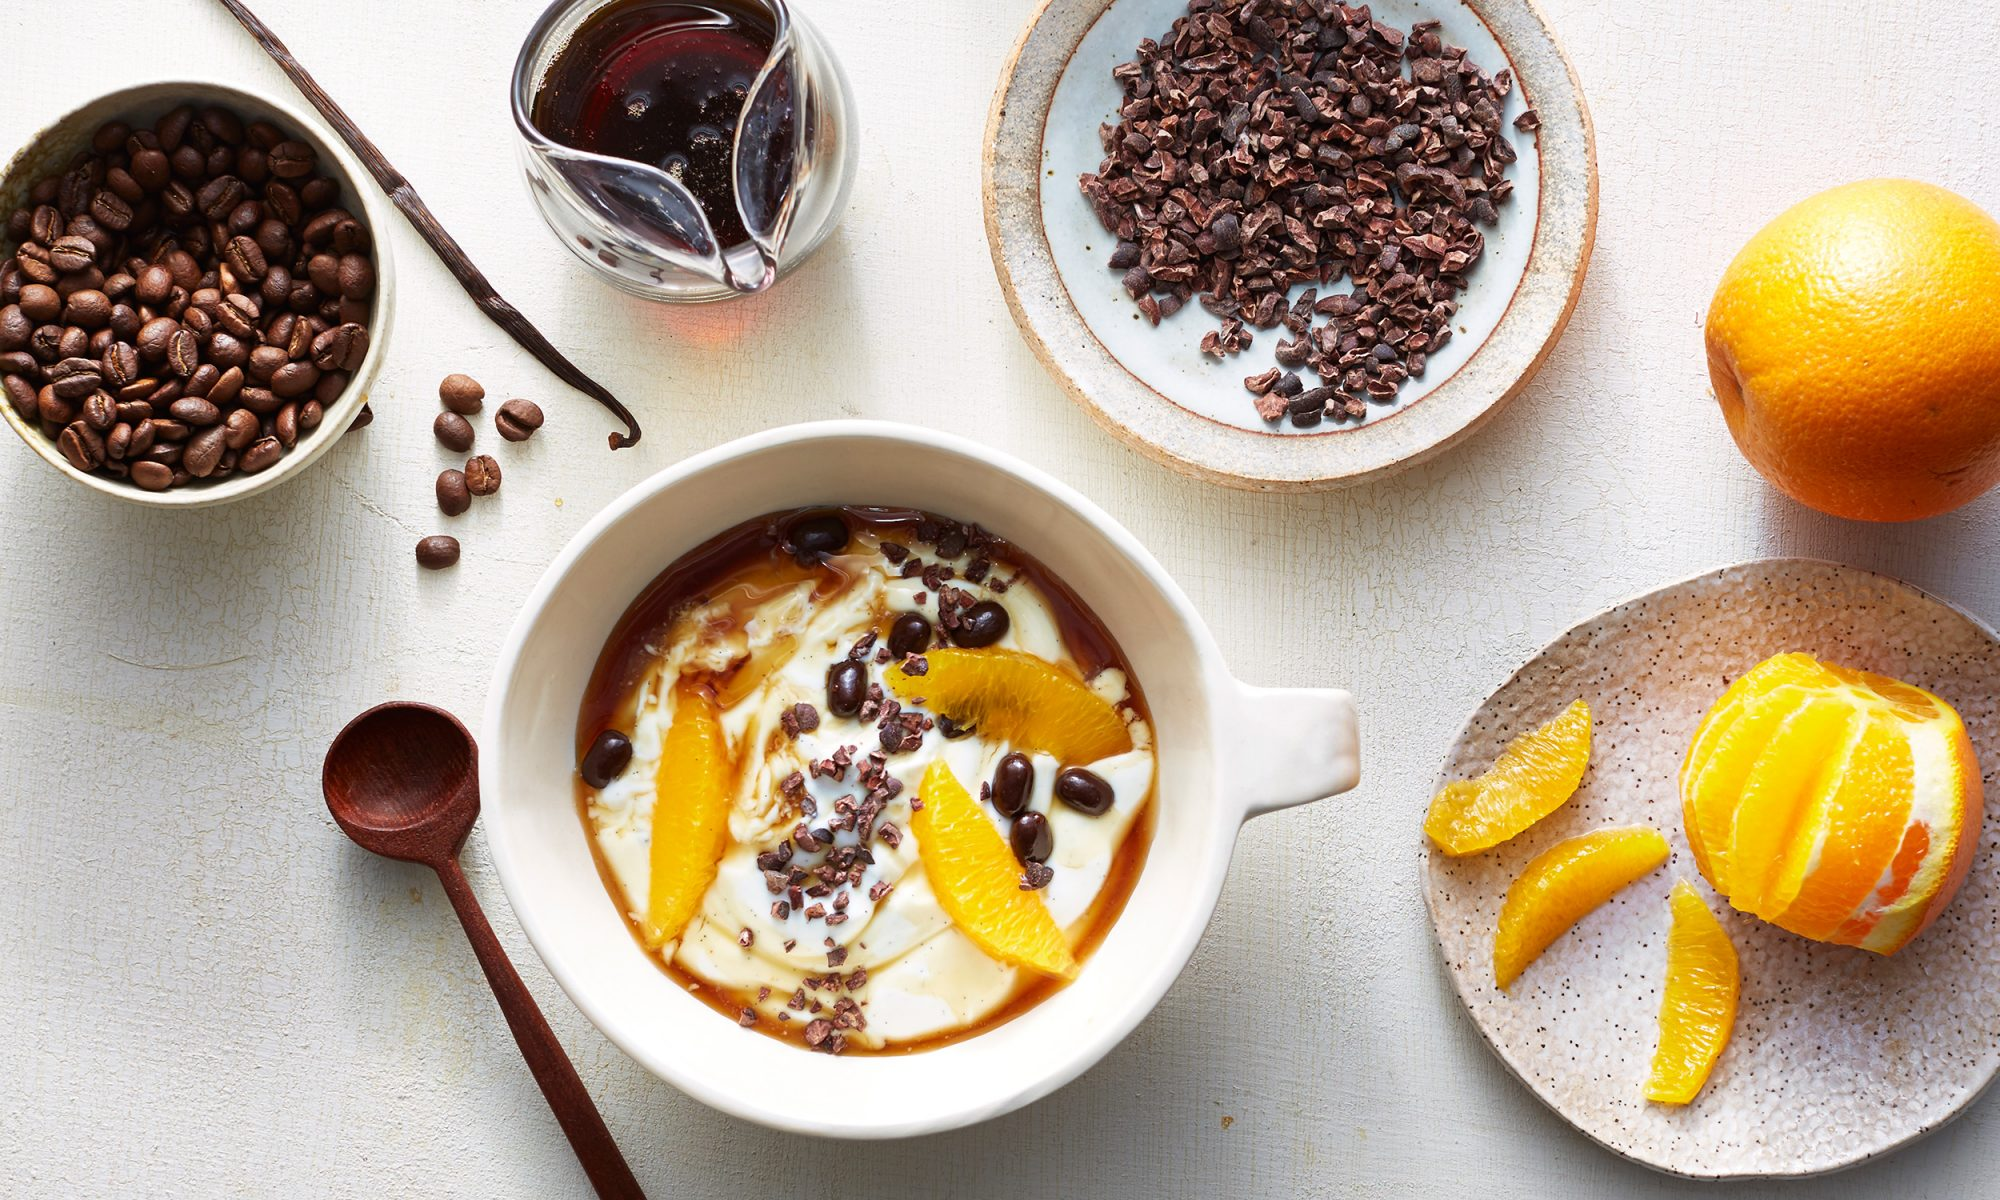 EC: This Magical Yogurt Bowl Is Caffeinated, Sweet, and Healthy